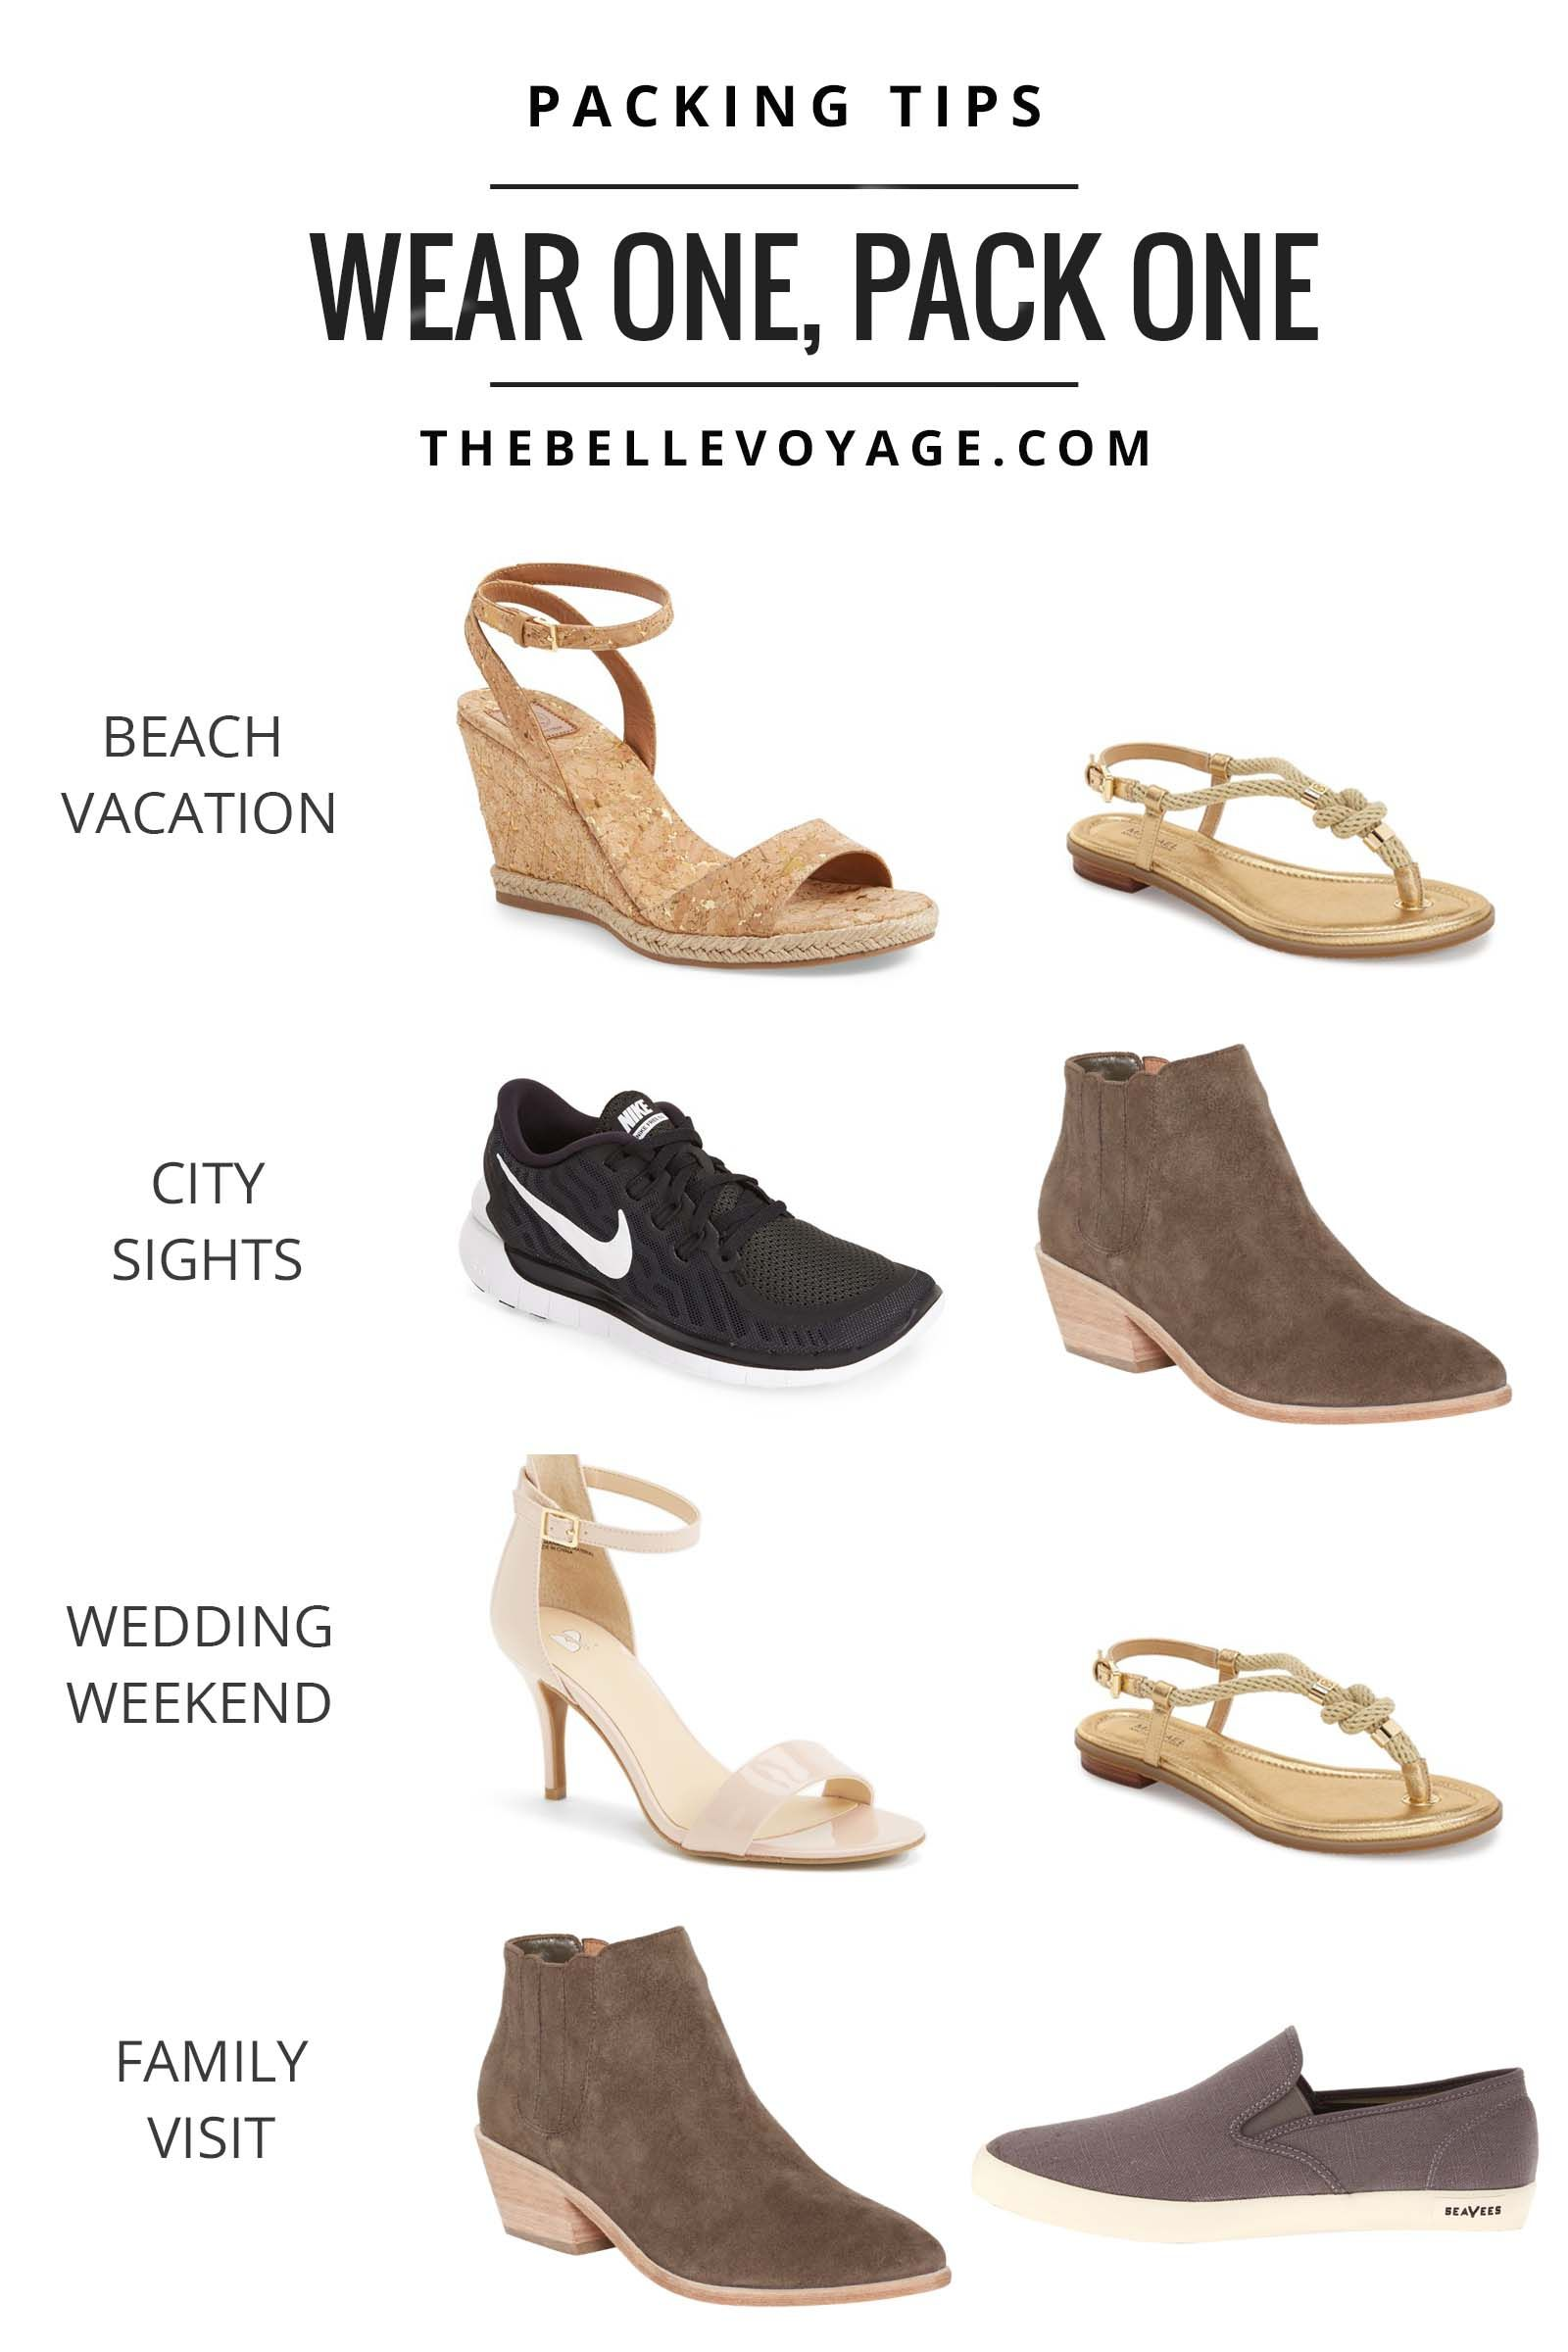 Packing Shoes for Travel | Travel shoes